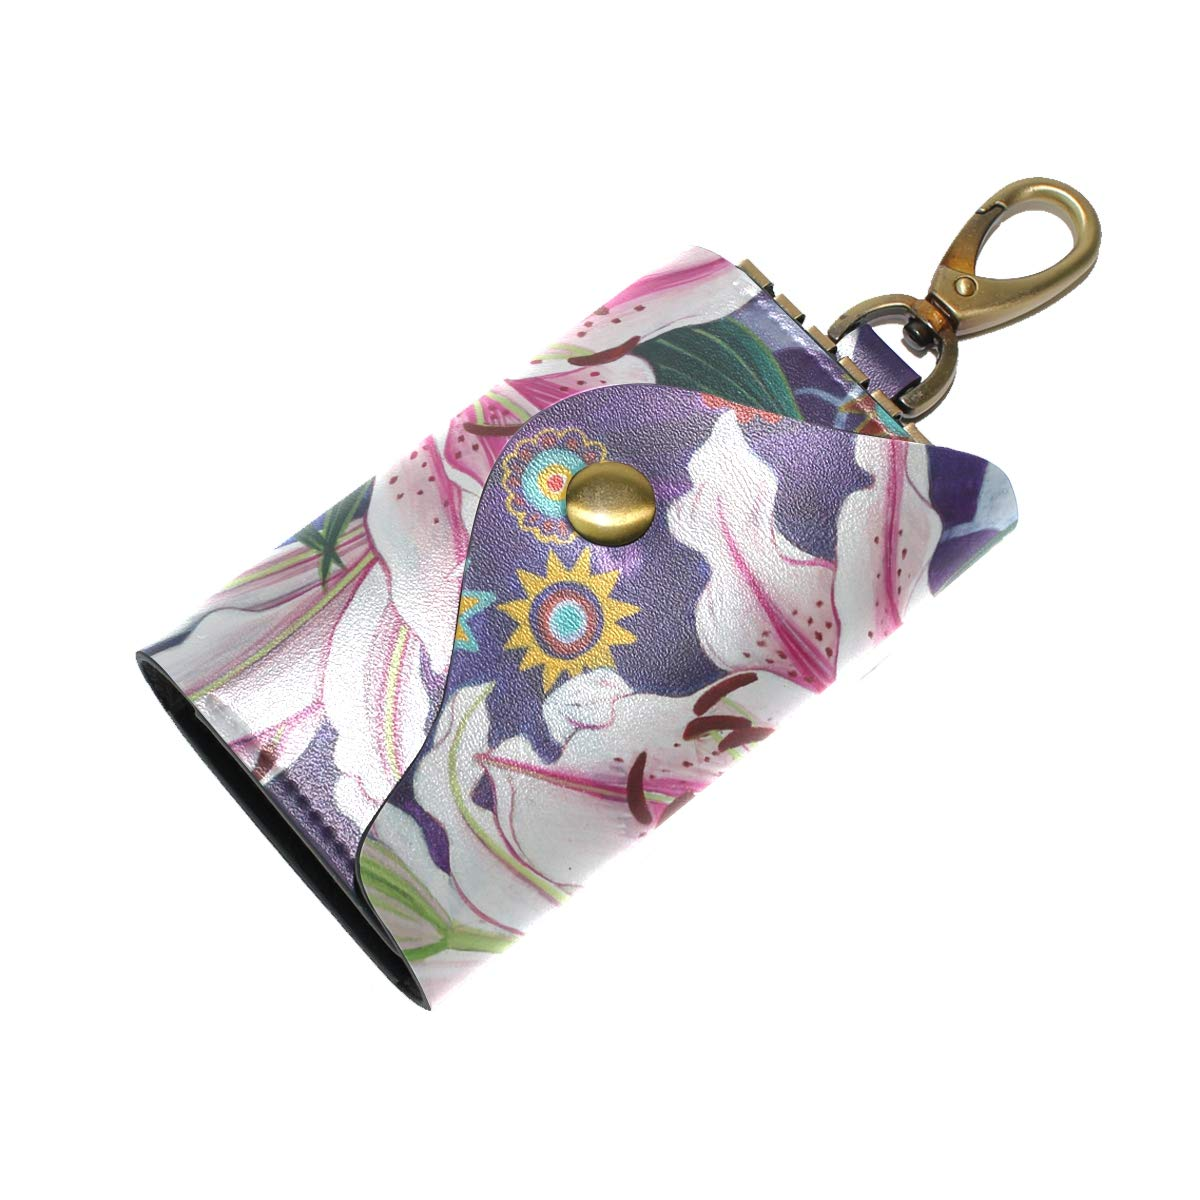 KEAKIA Lily Leather Key Case Wallets Tri-fold Key Holder Keychains with 6 Hooks 2 Slot Snap Closure for Men Women